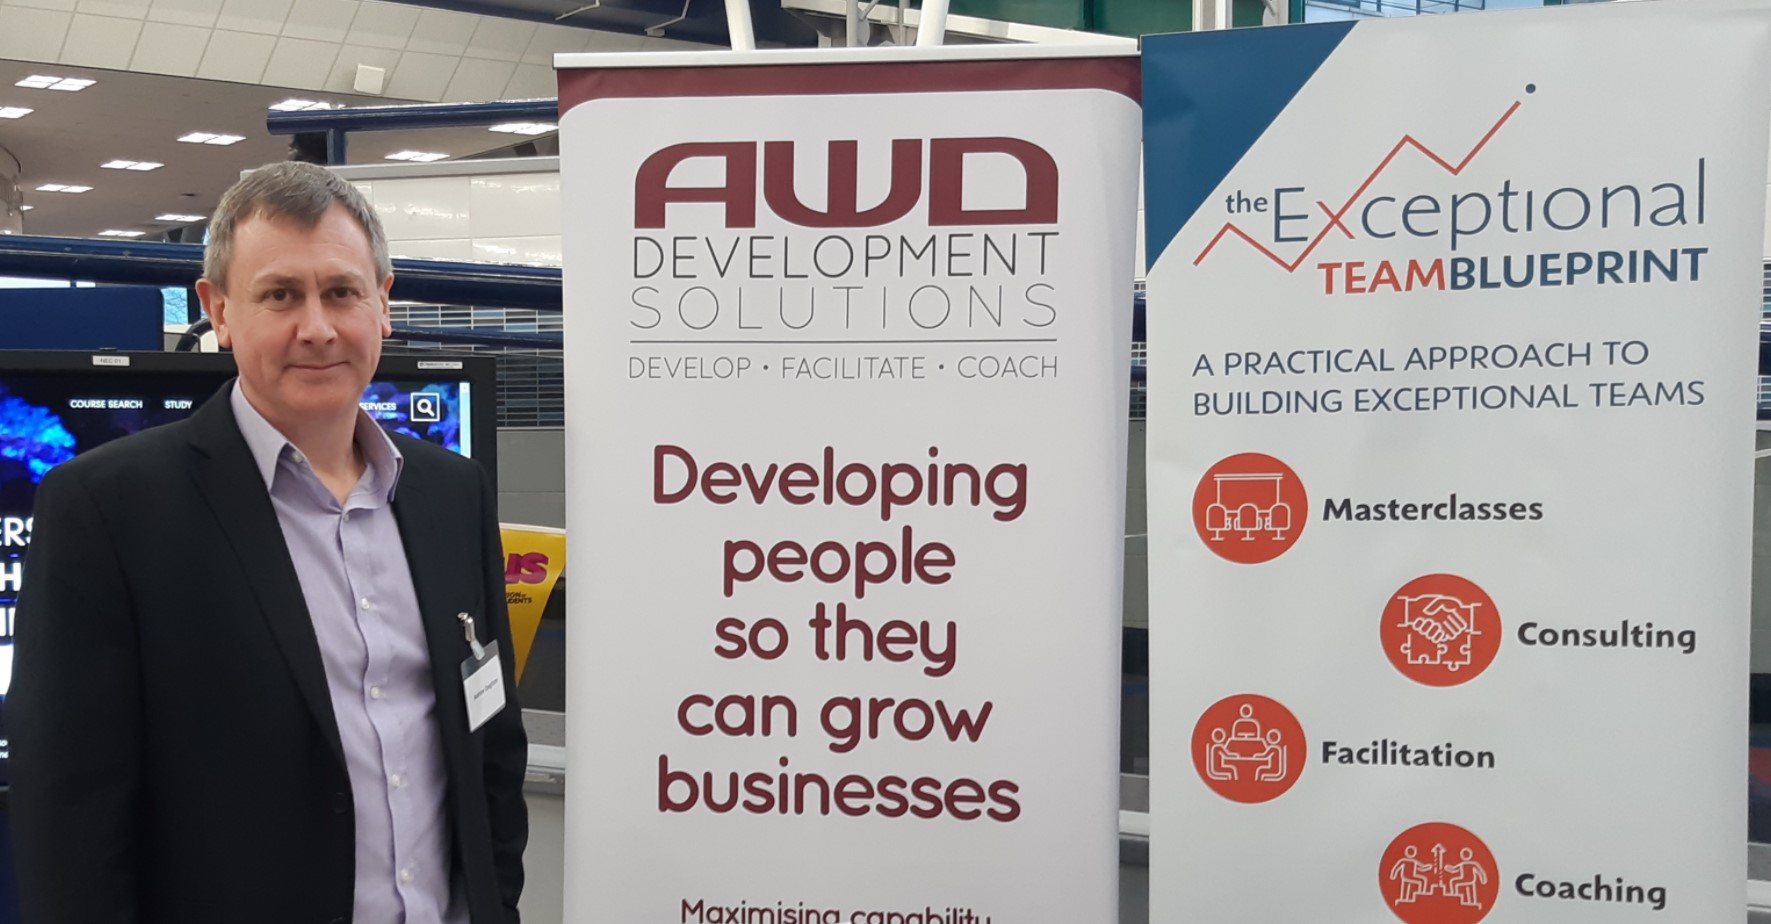 AWD Development Solutions chosen as one of this year's #SmallBiz100